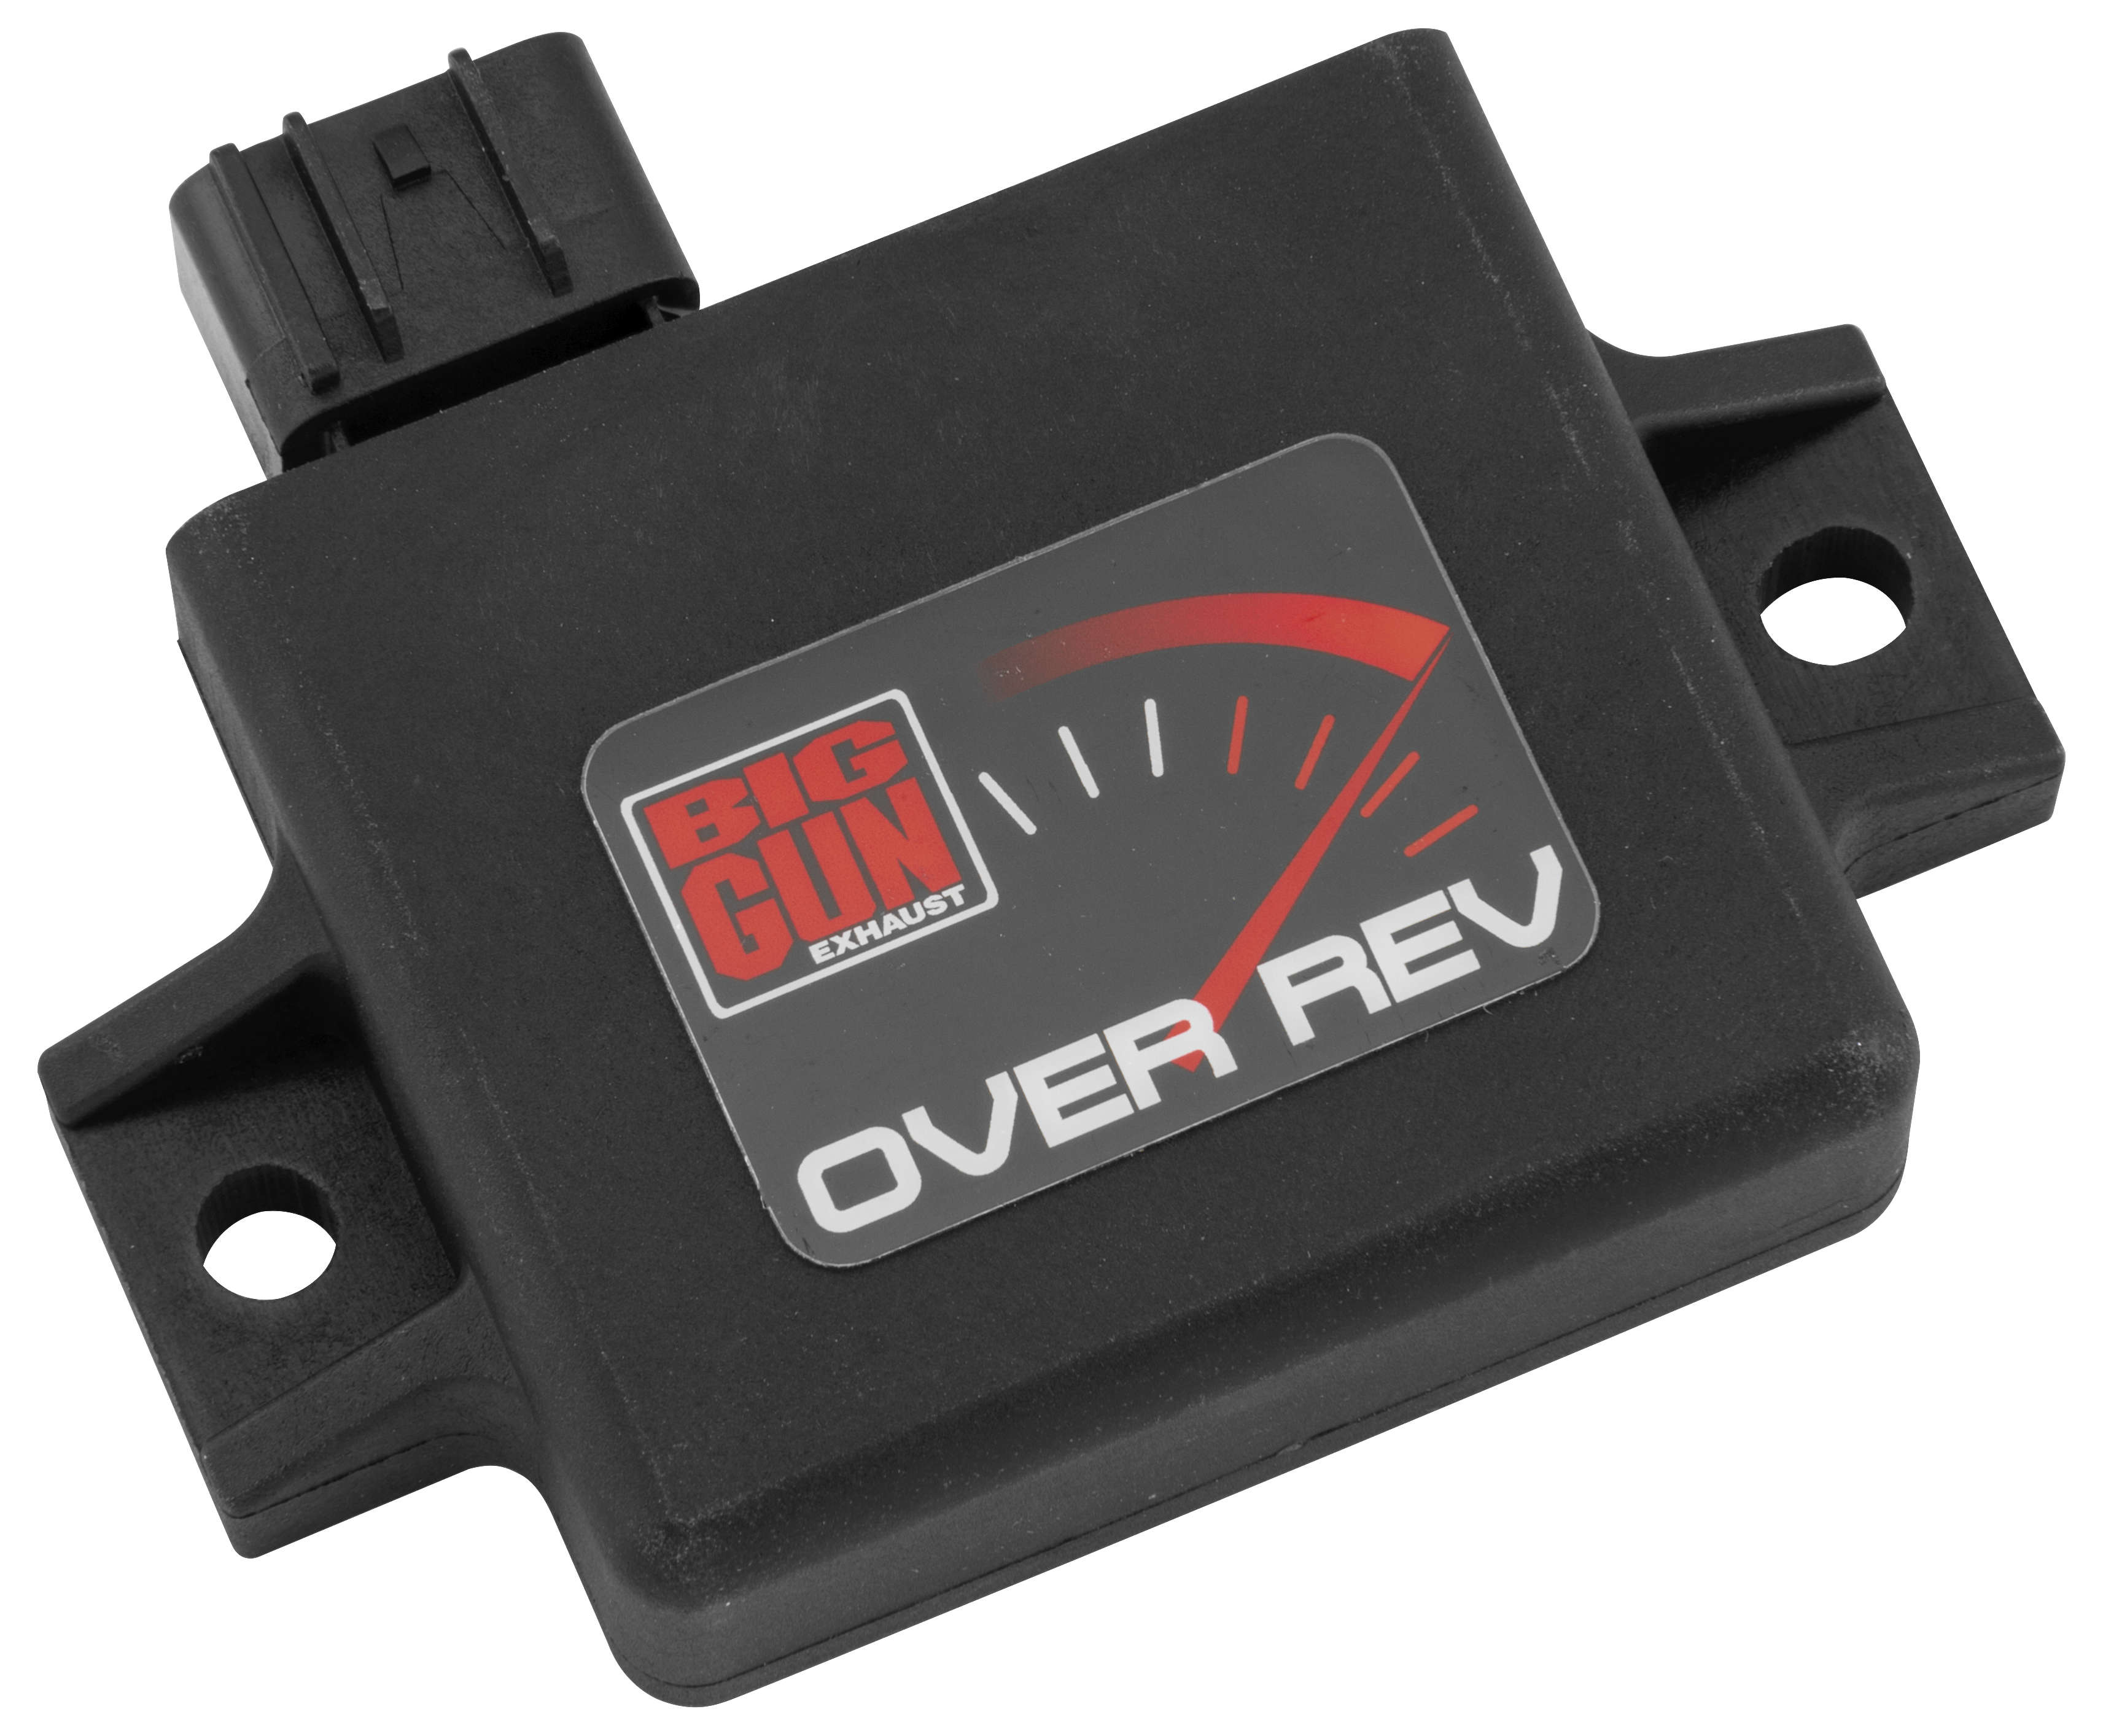 Big Gun Rev Box CDI ECU Ignition Bombardier DS 650 DS650 Baja 2002-2005 40-R04